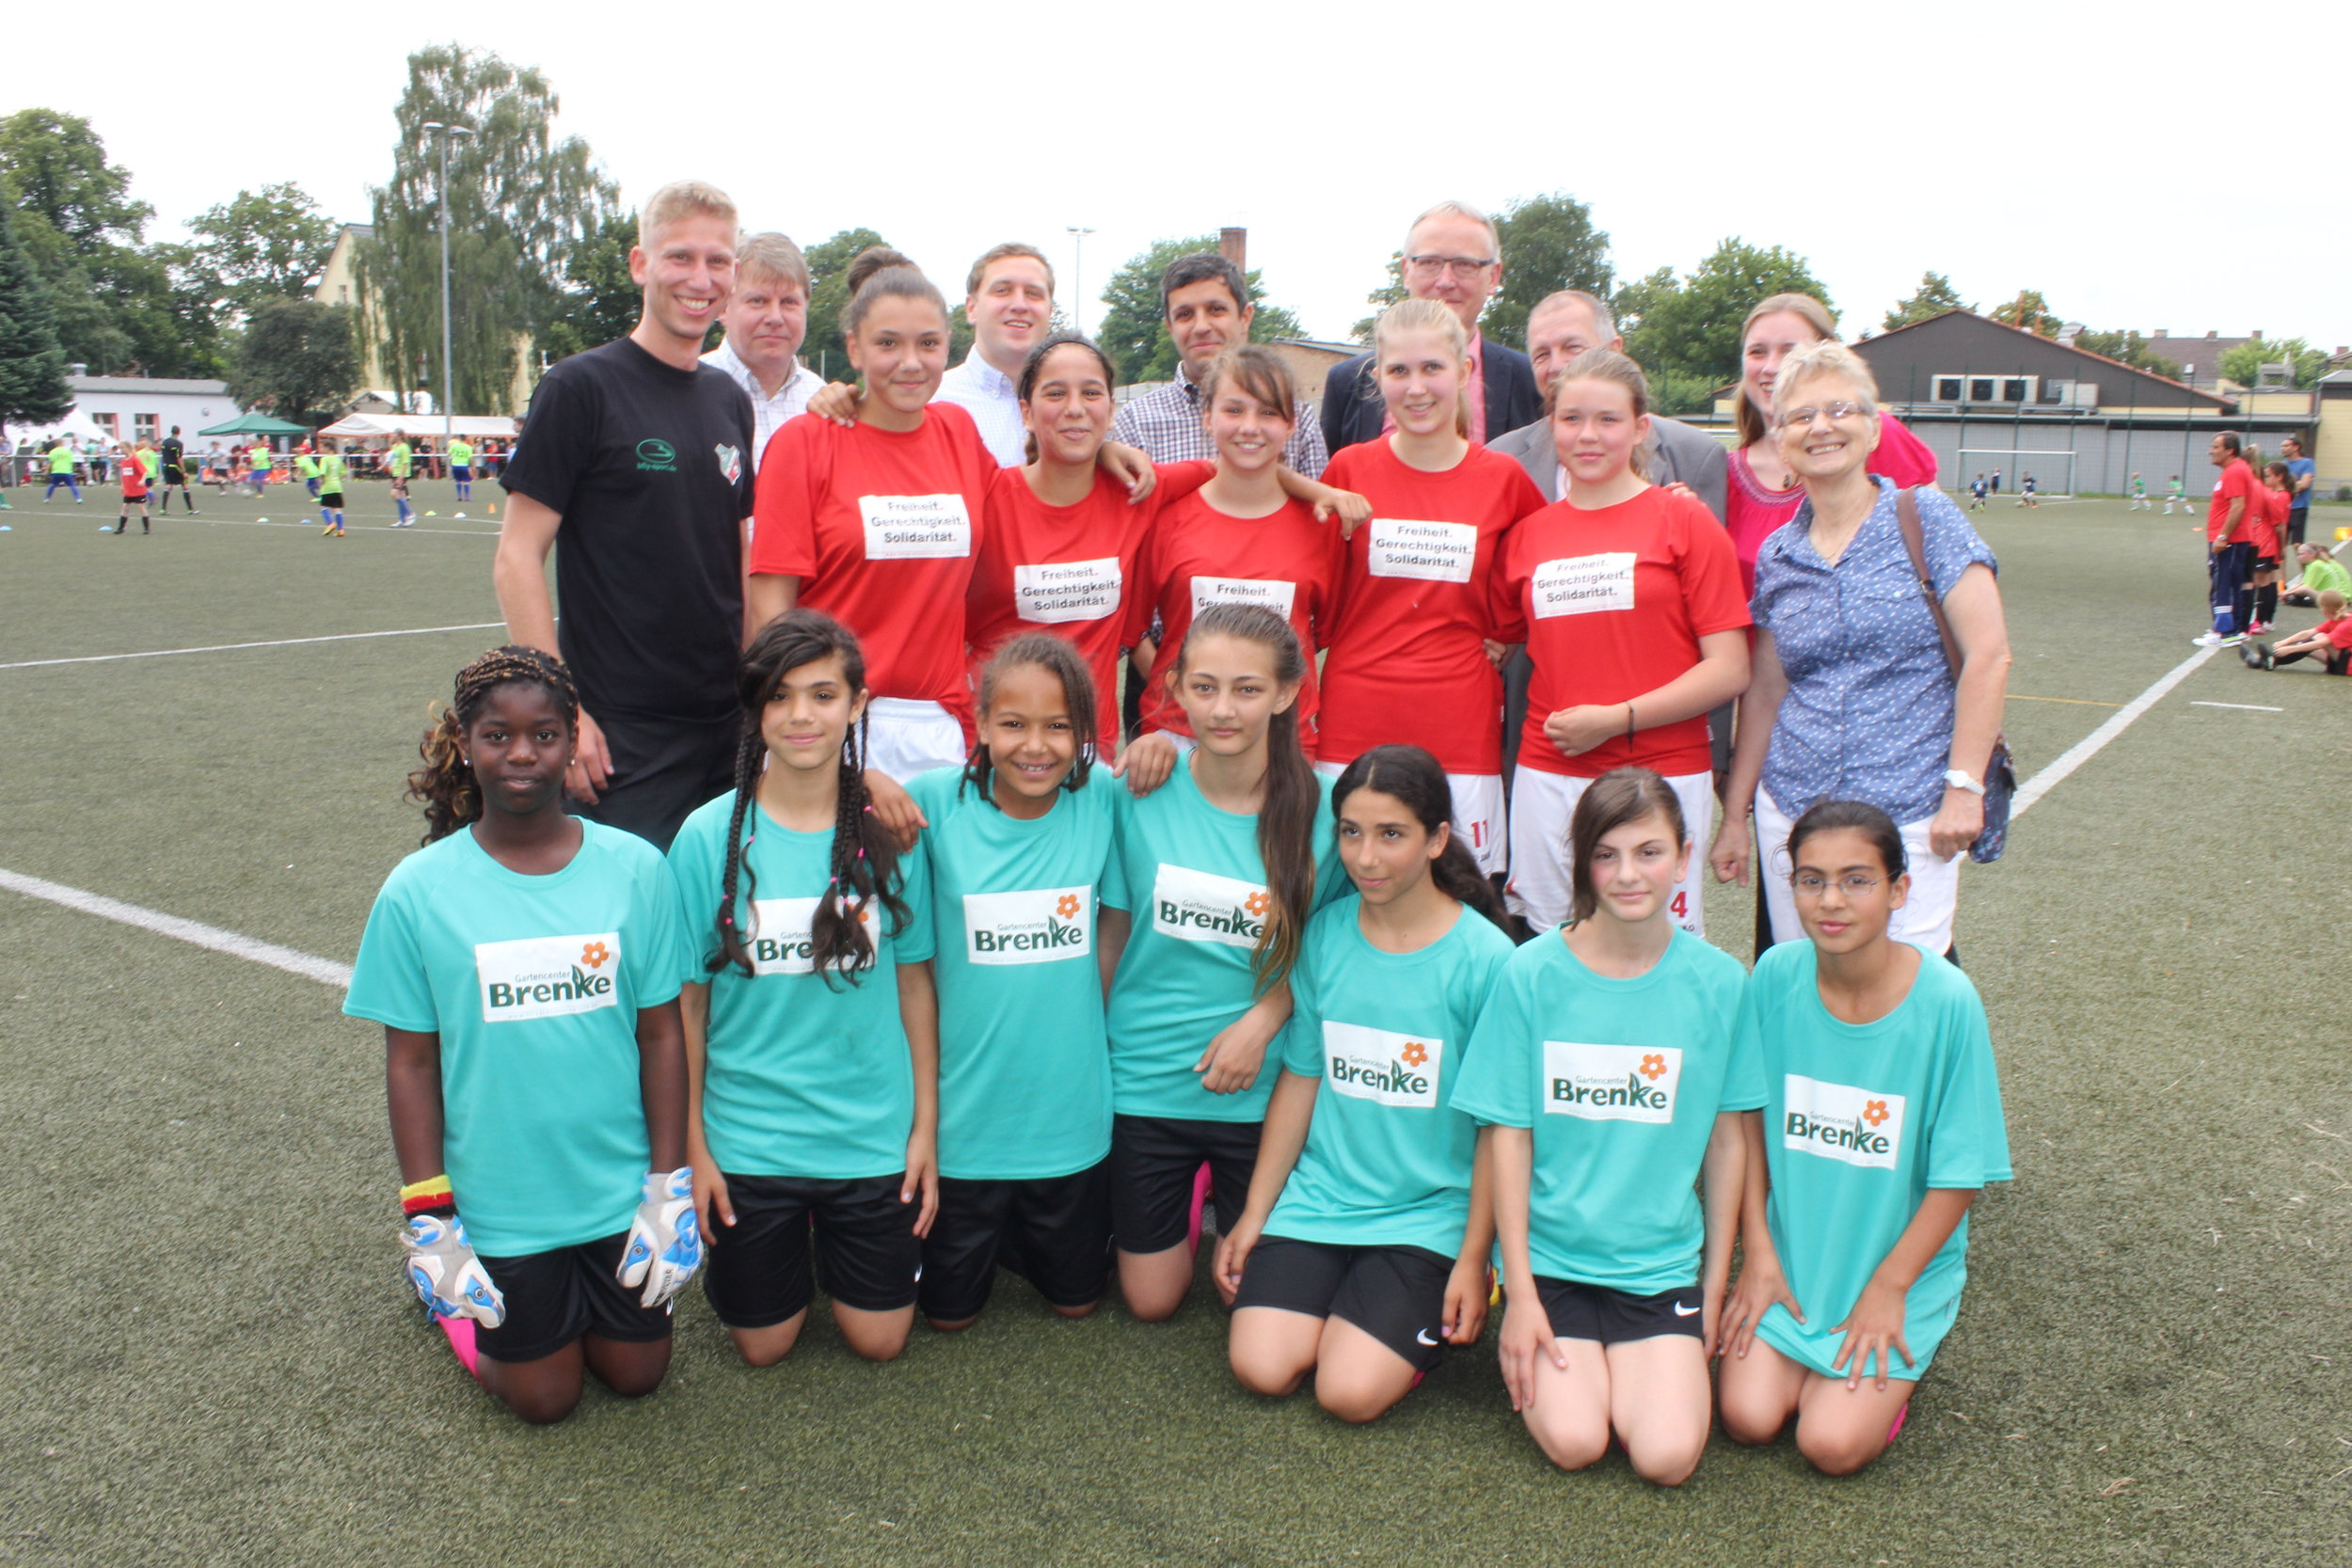 140705_SV Buchholz Integrationscup 2